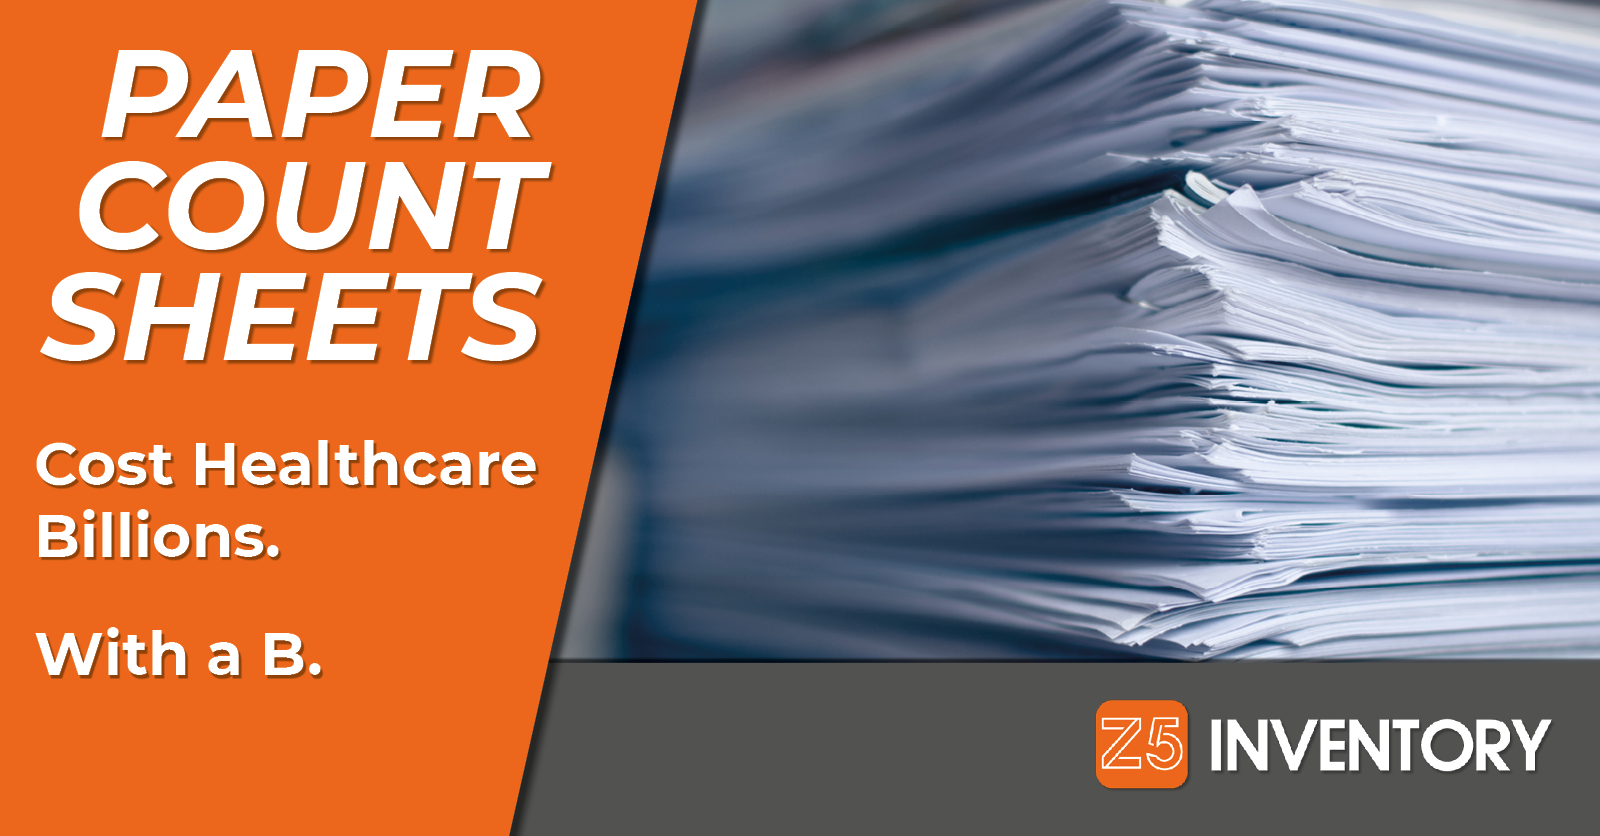 Count Sheets Cost The Healthcare Industry Billions Every Year.